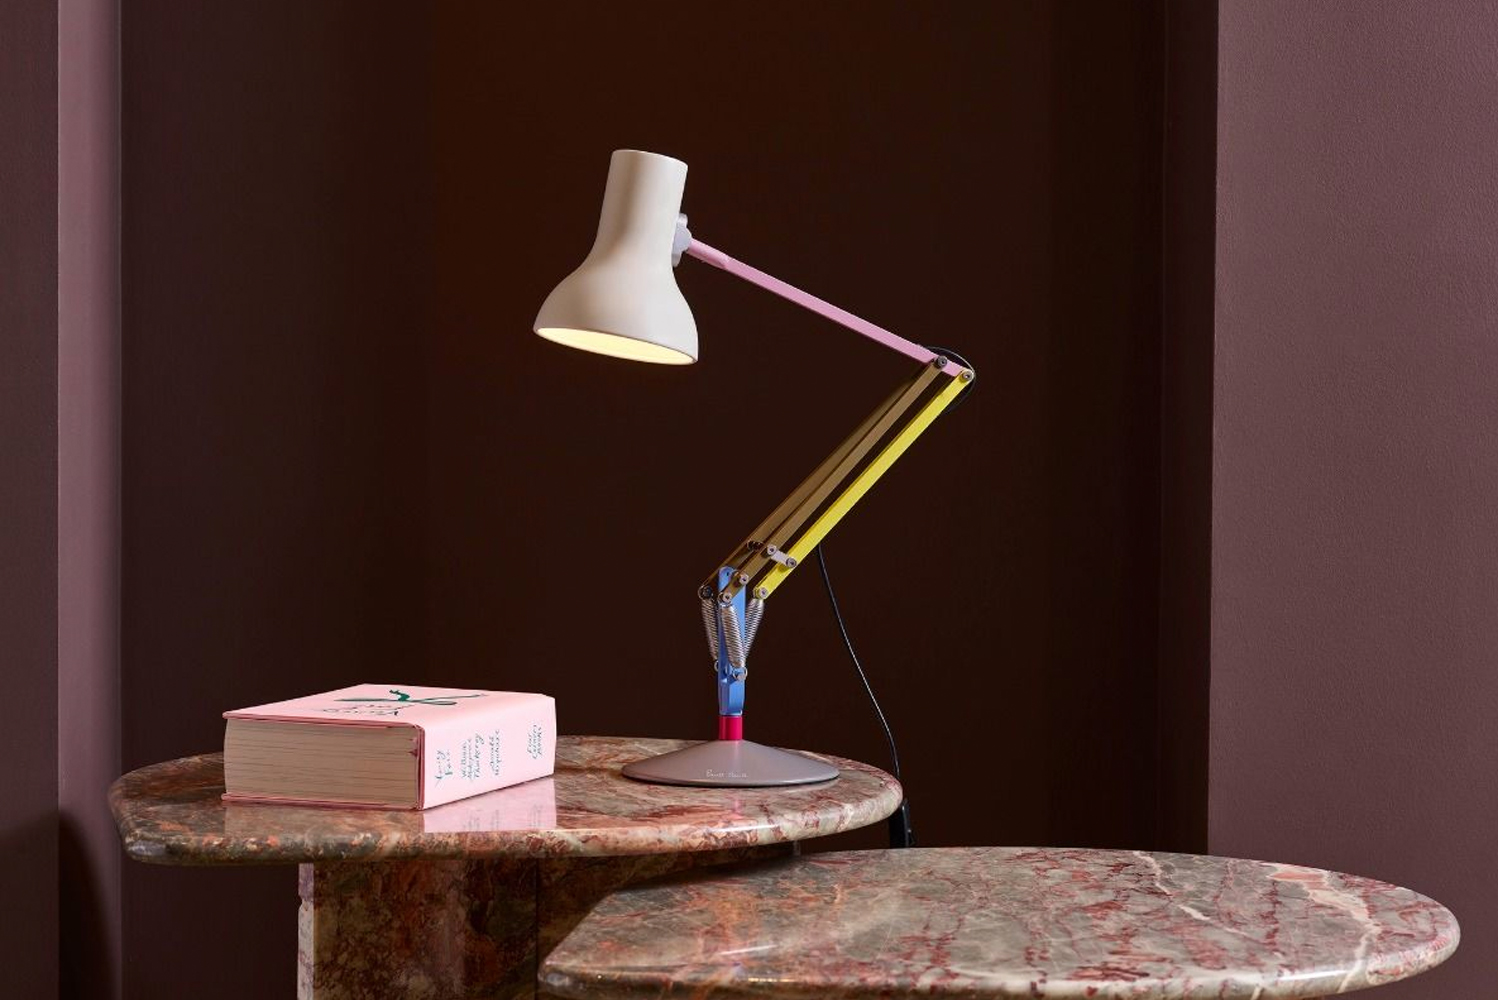 The Type 75 giant floor lamp comes in the color scheme from the very first collaboration, Edition One, and features bright hues.